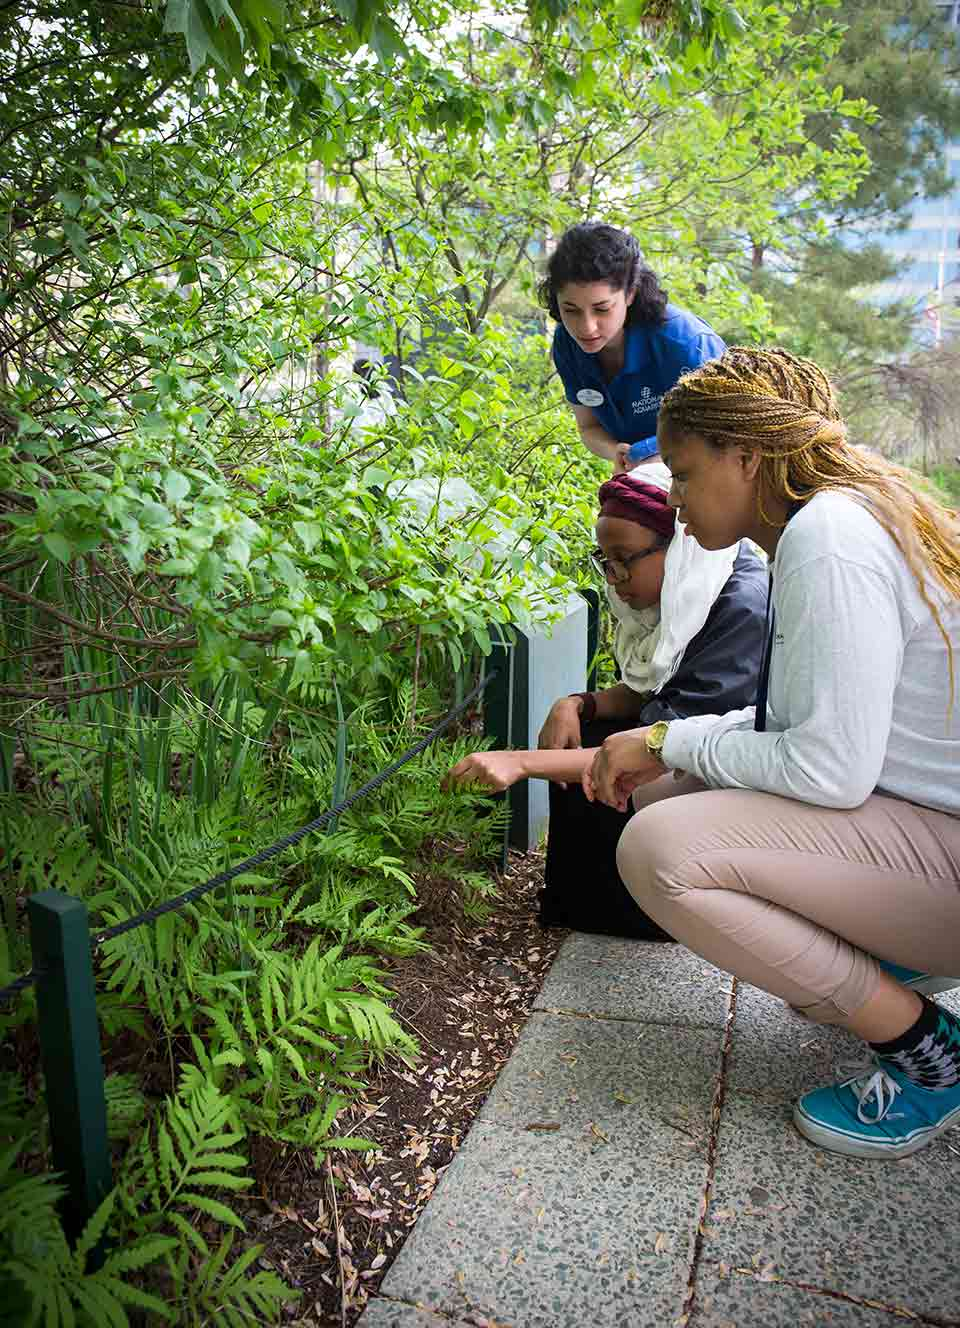 Guests crouch on a path through the National Aquarium's Certified Habitat.